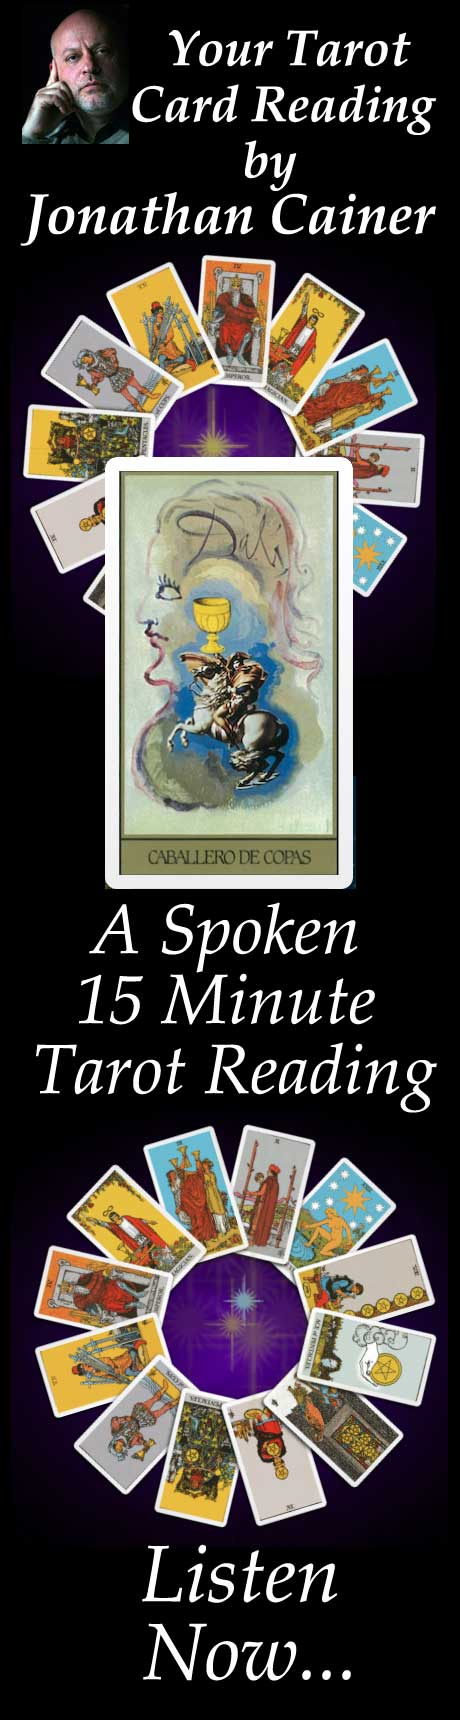 Tarot Card Readings from Jonathan Cainer